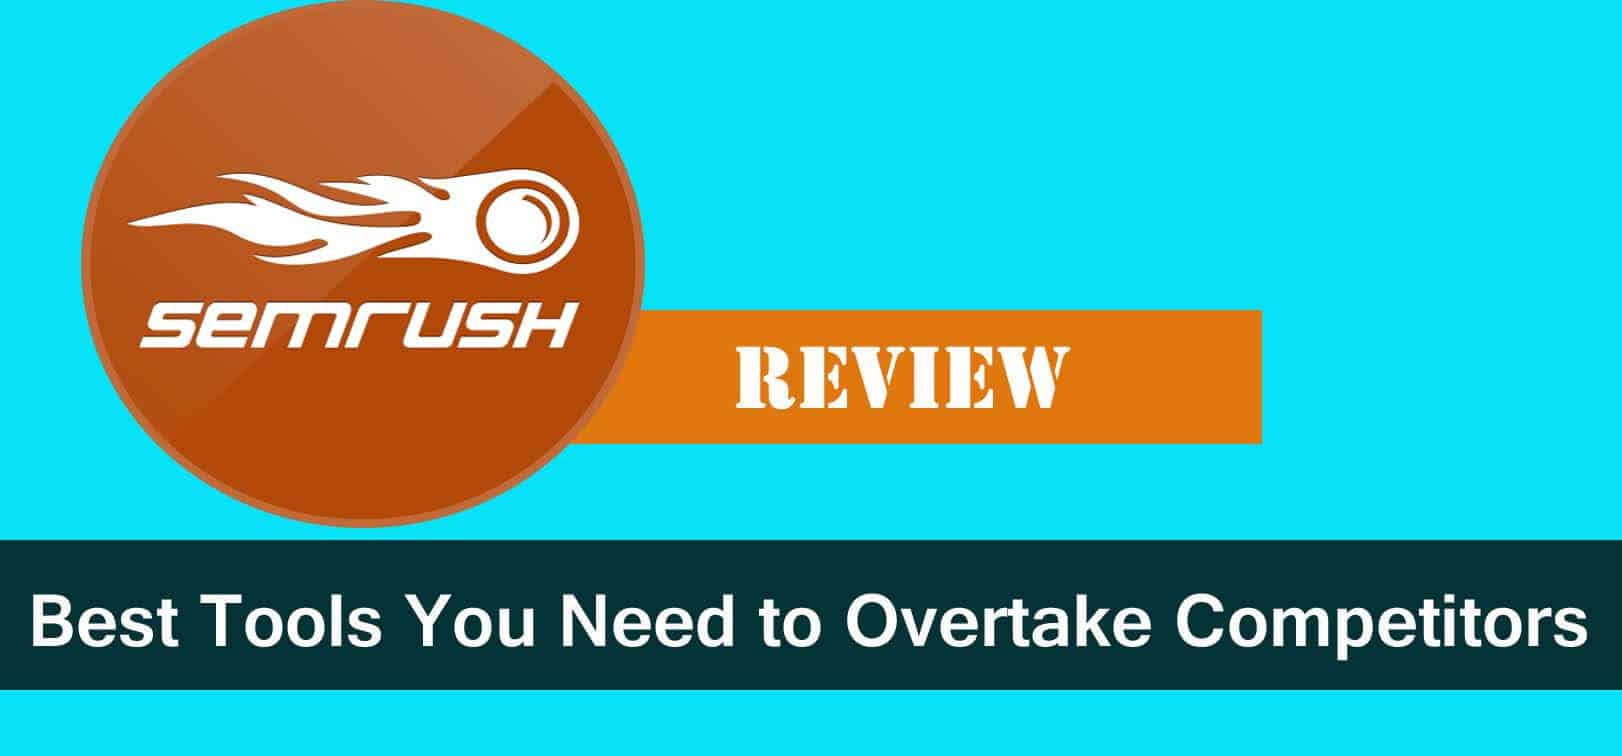 SEMRush Review: Only Tools You Need To Overtake Competitors